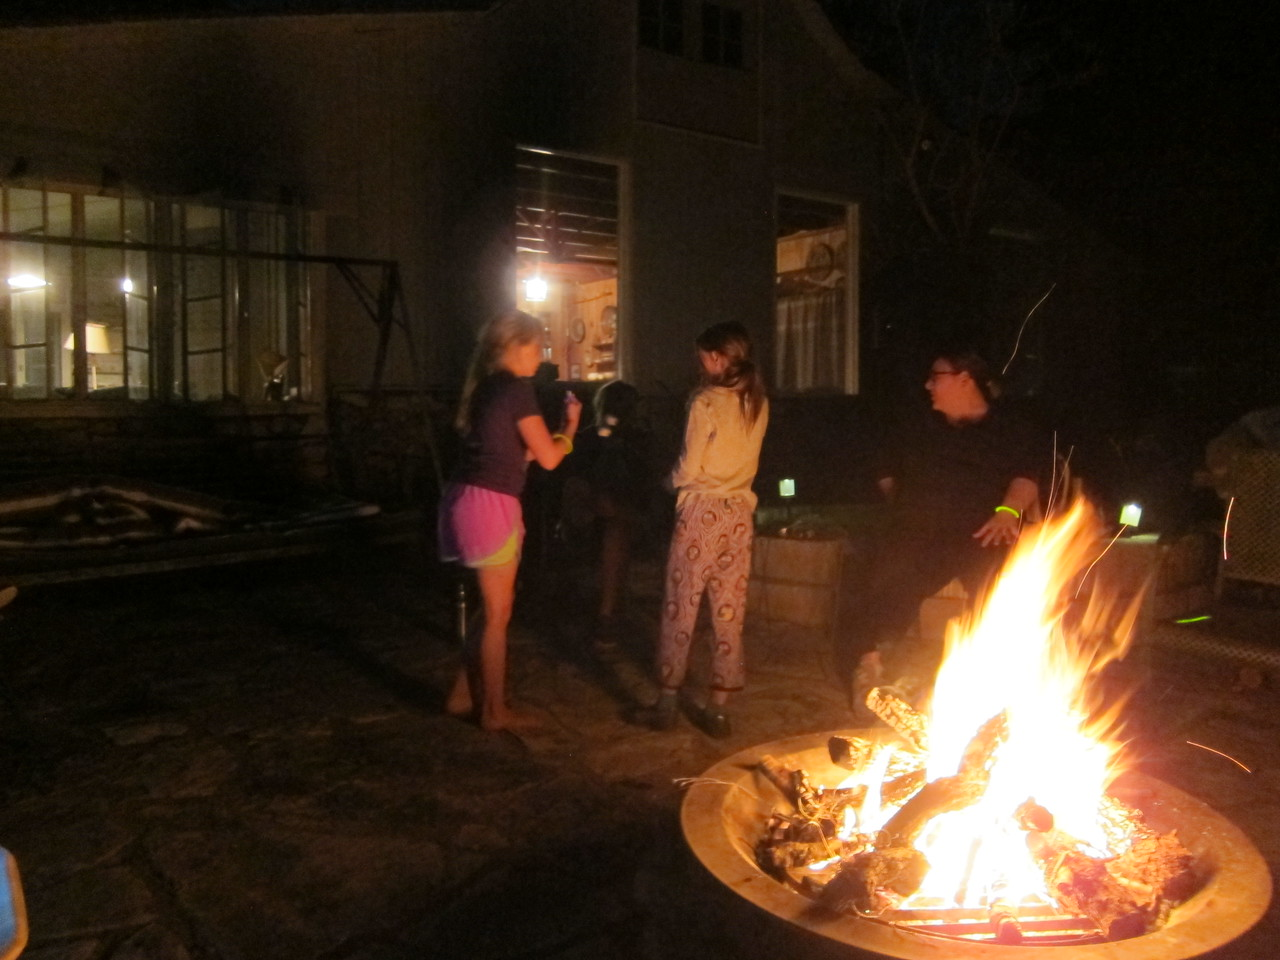 Fire and smores time!